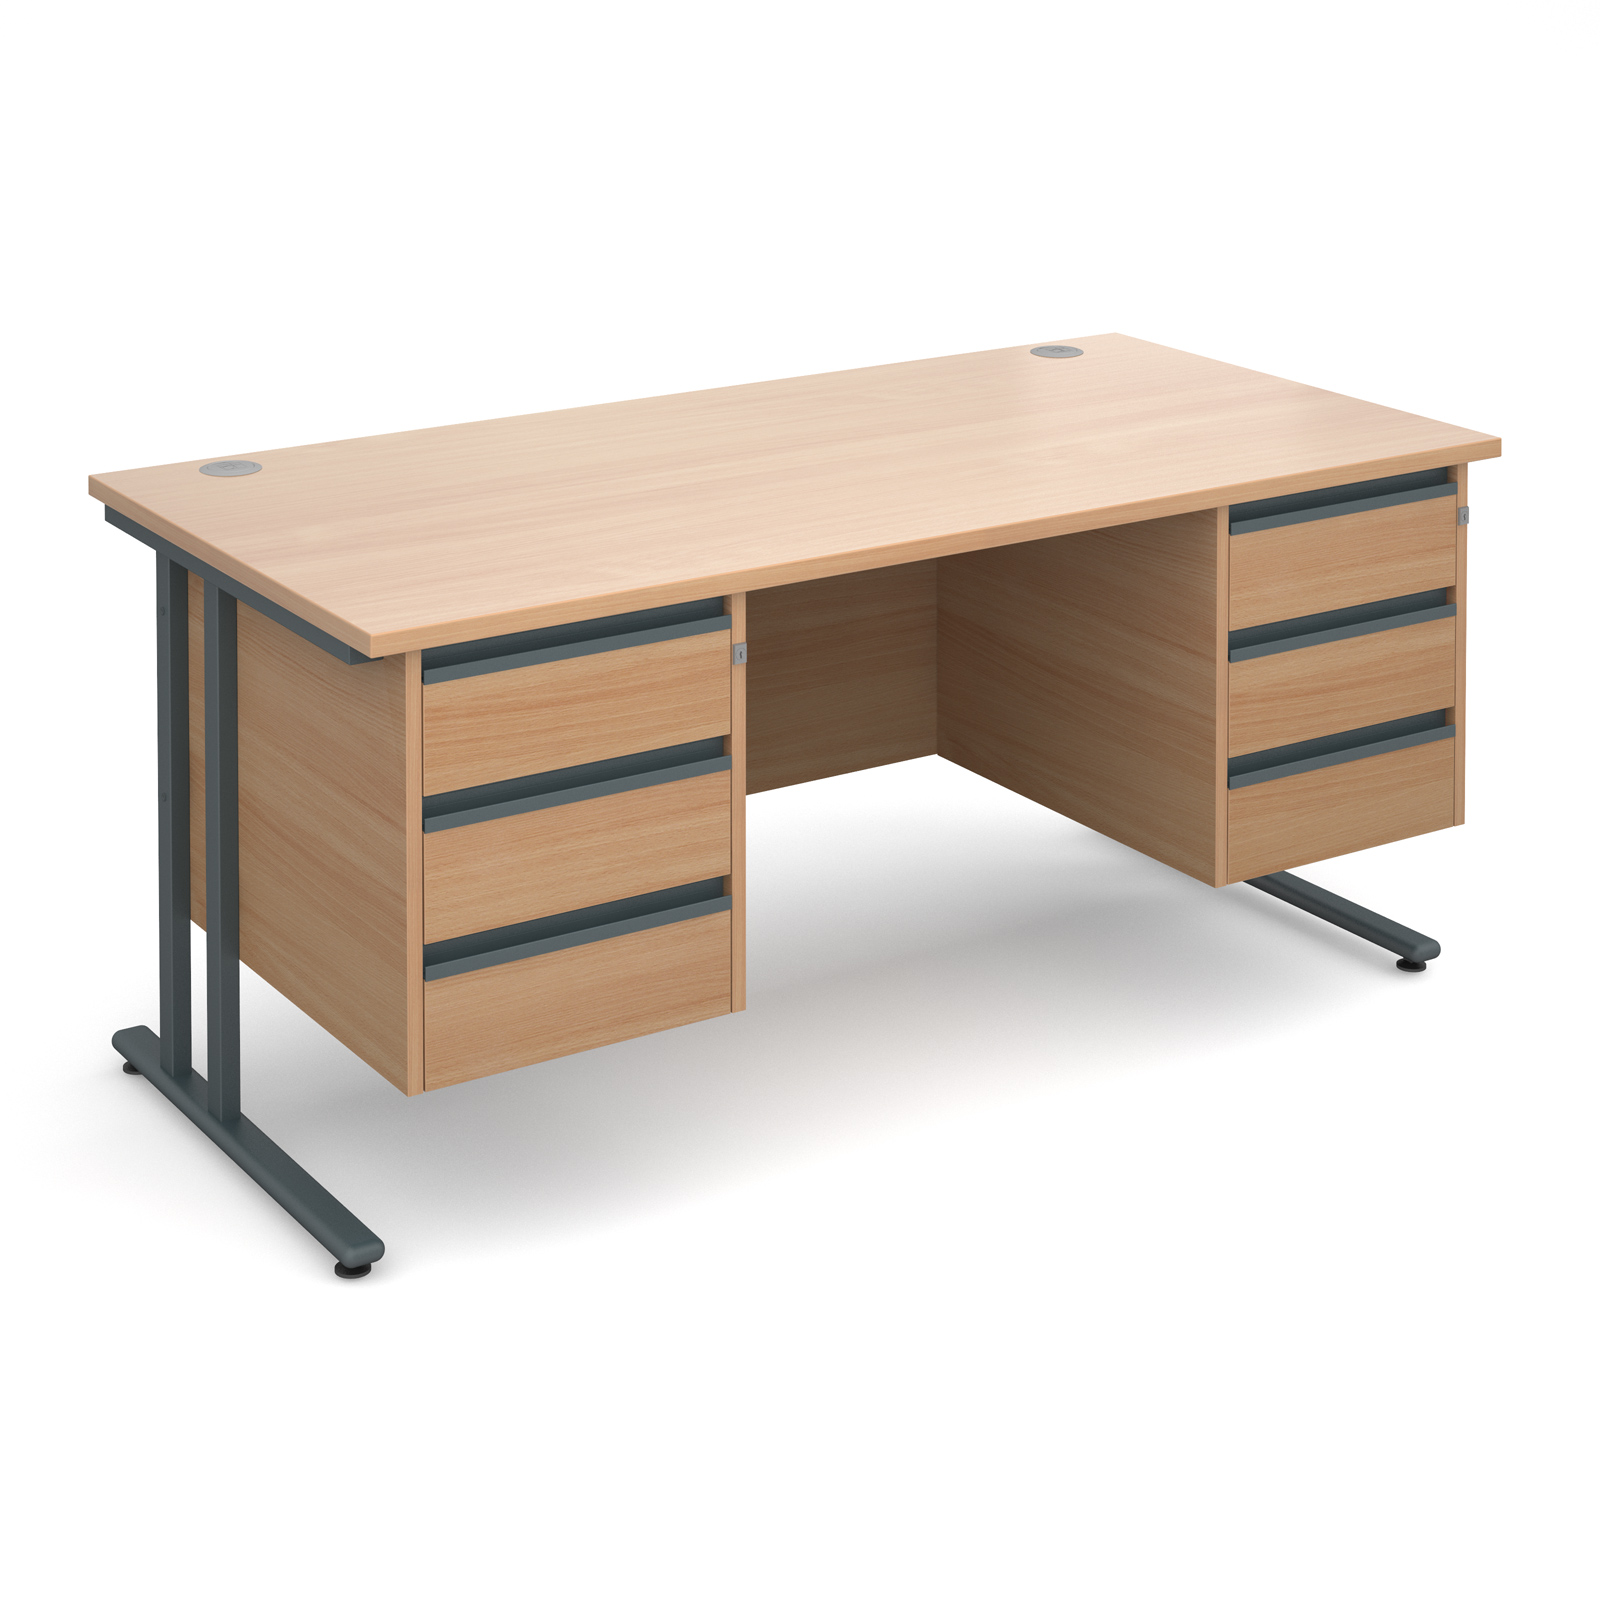 Maestro 25 GL straight desk with 3 and 3 drawer pedestals 1600mm - graphite cantilever frame, beech top